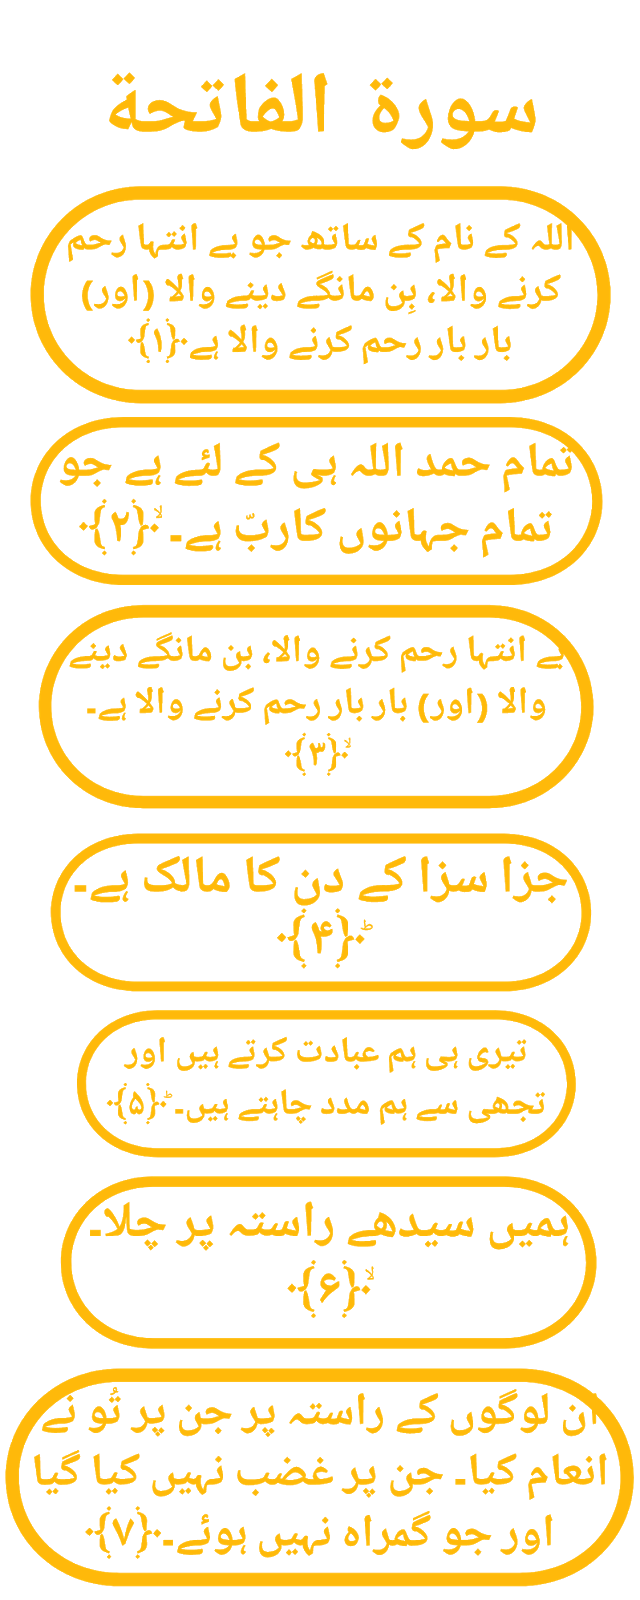 surah fatiha with urdu translation,